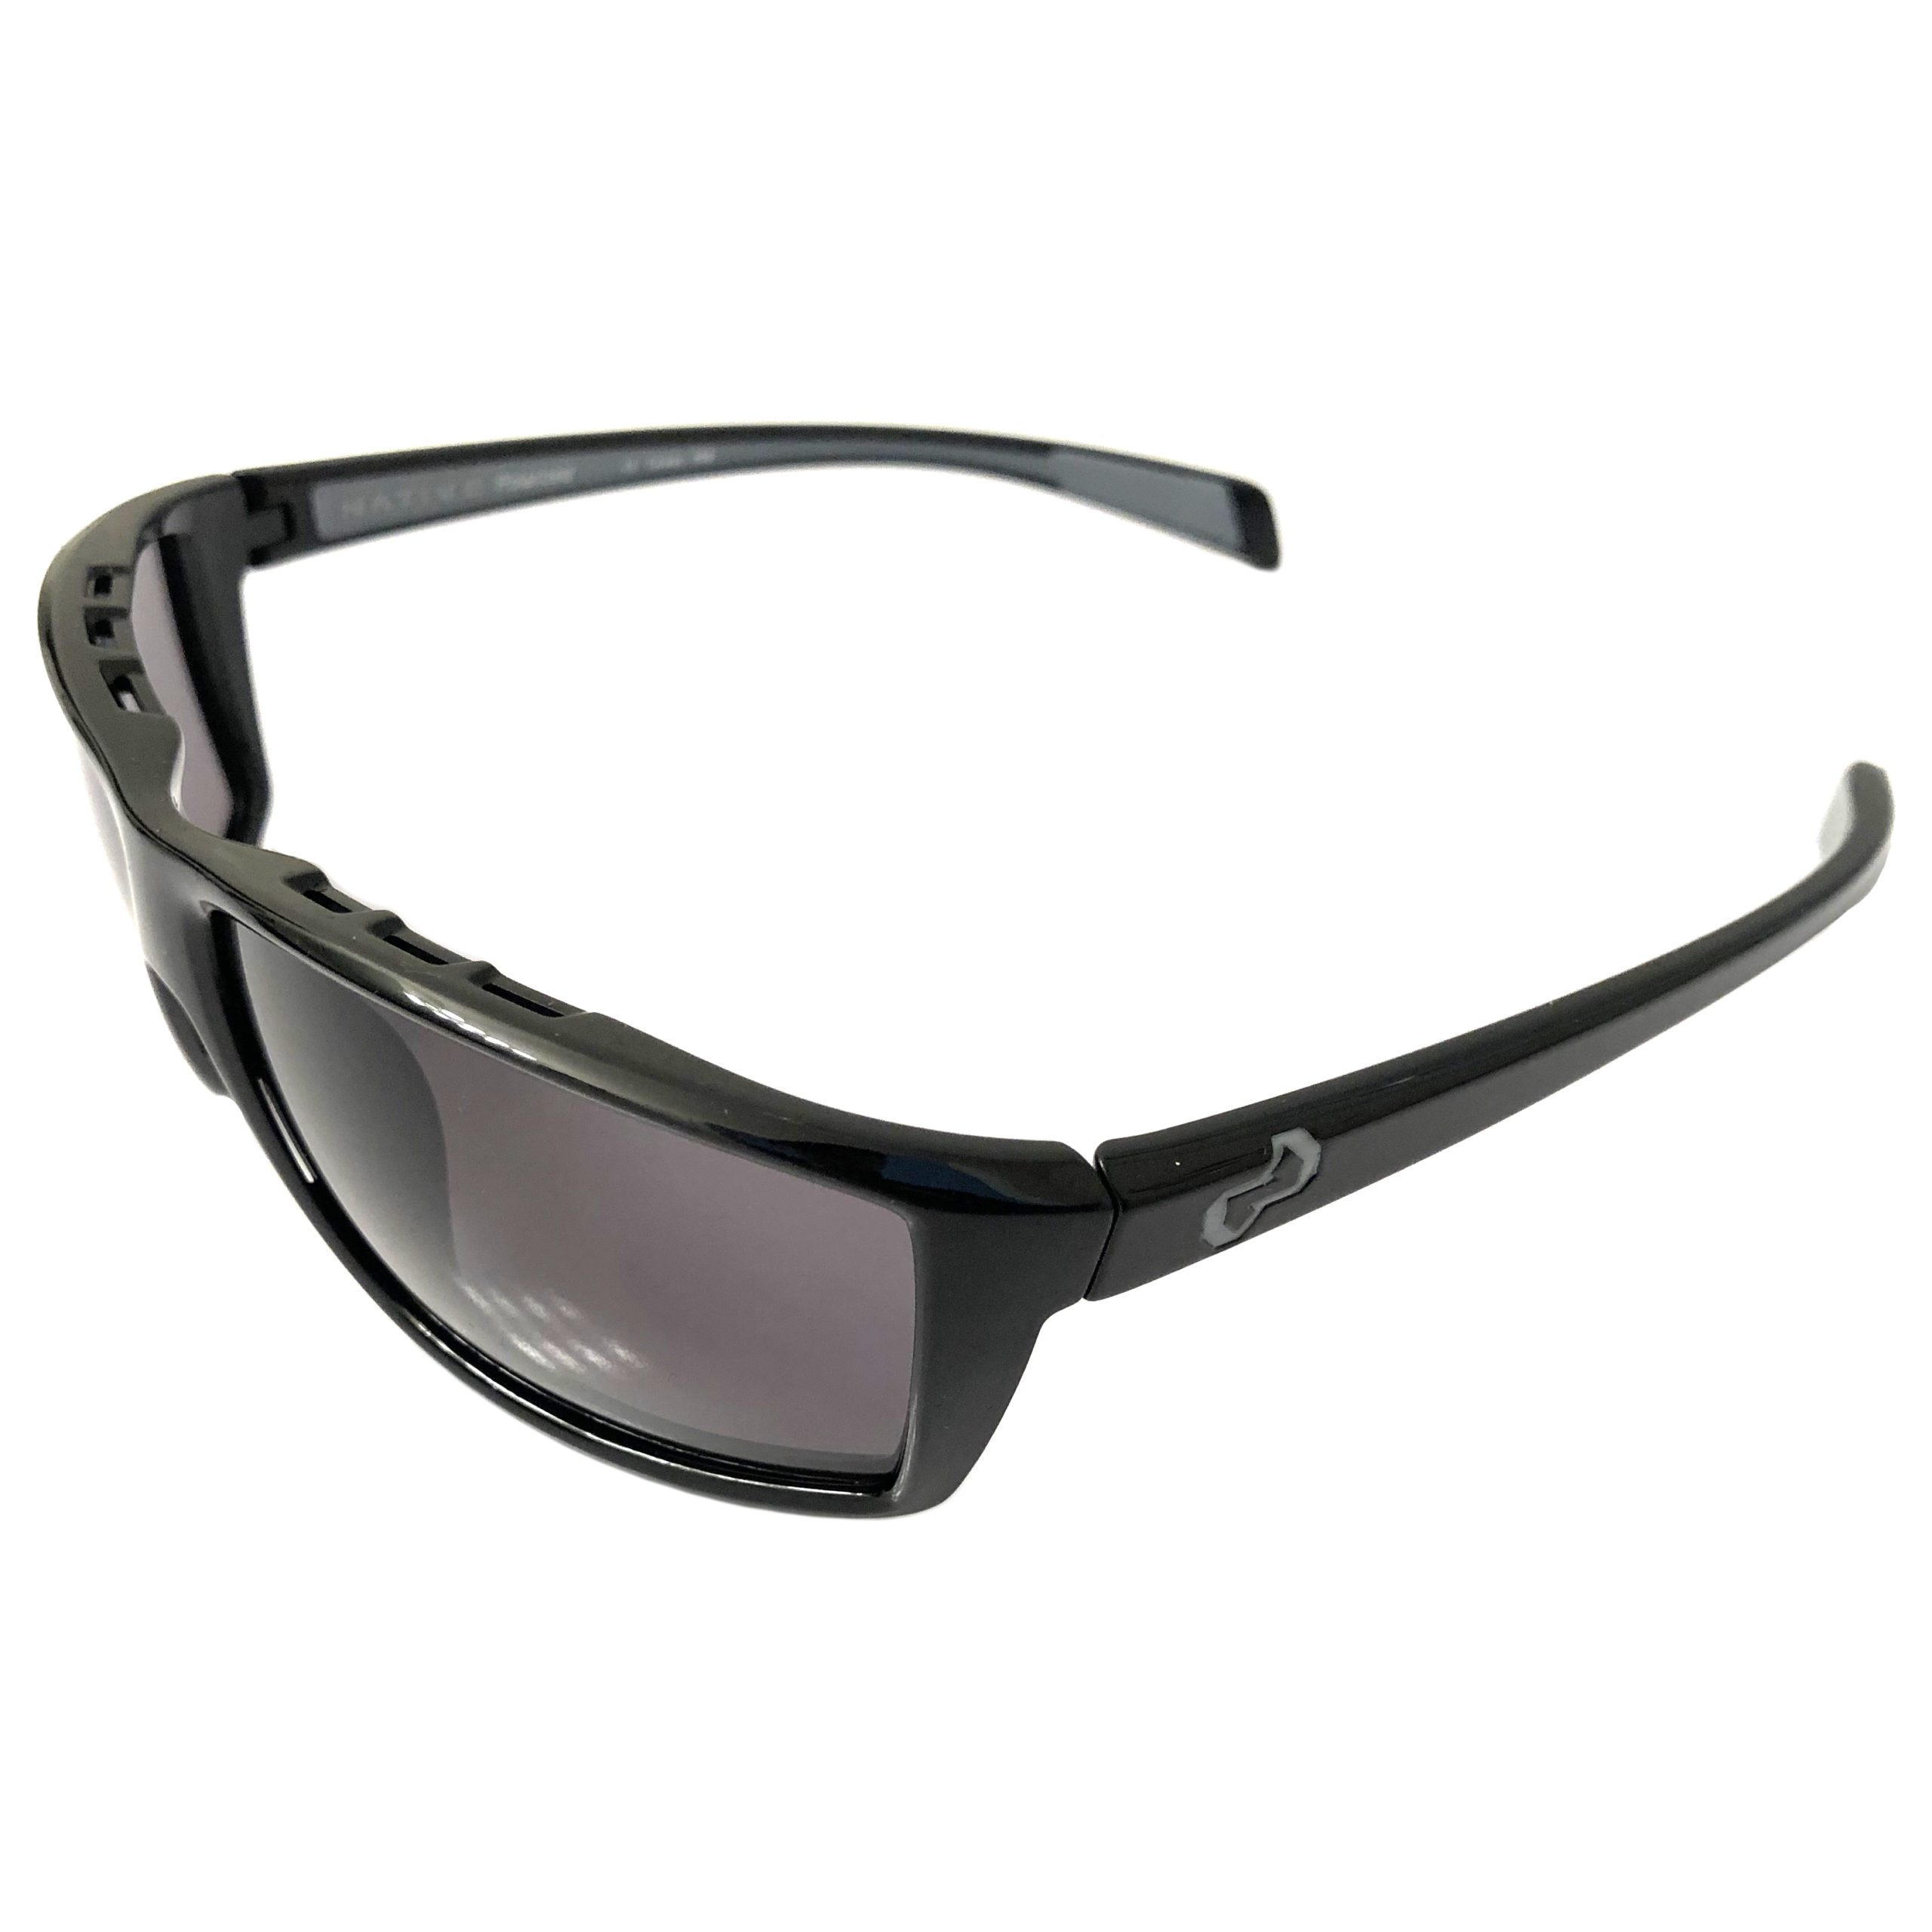 Native Eyewear Sidecar Sunglasses - Gloss Black - POLARIZED Gray